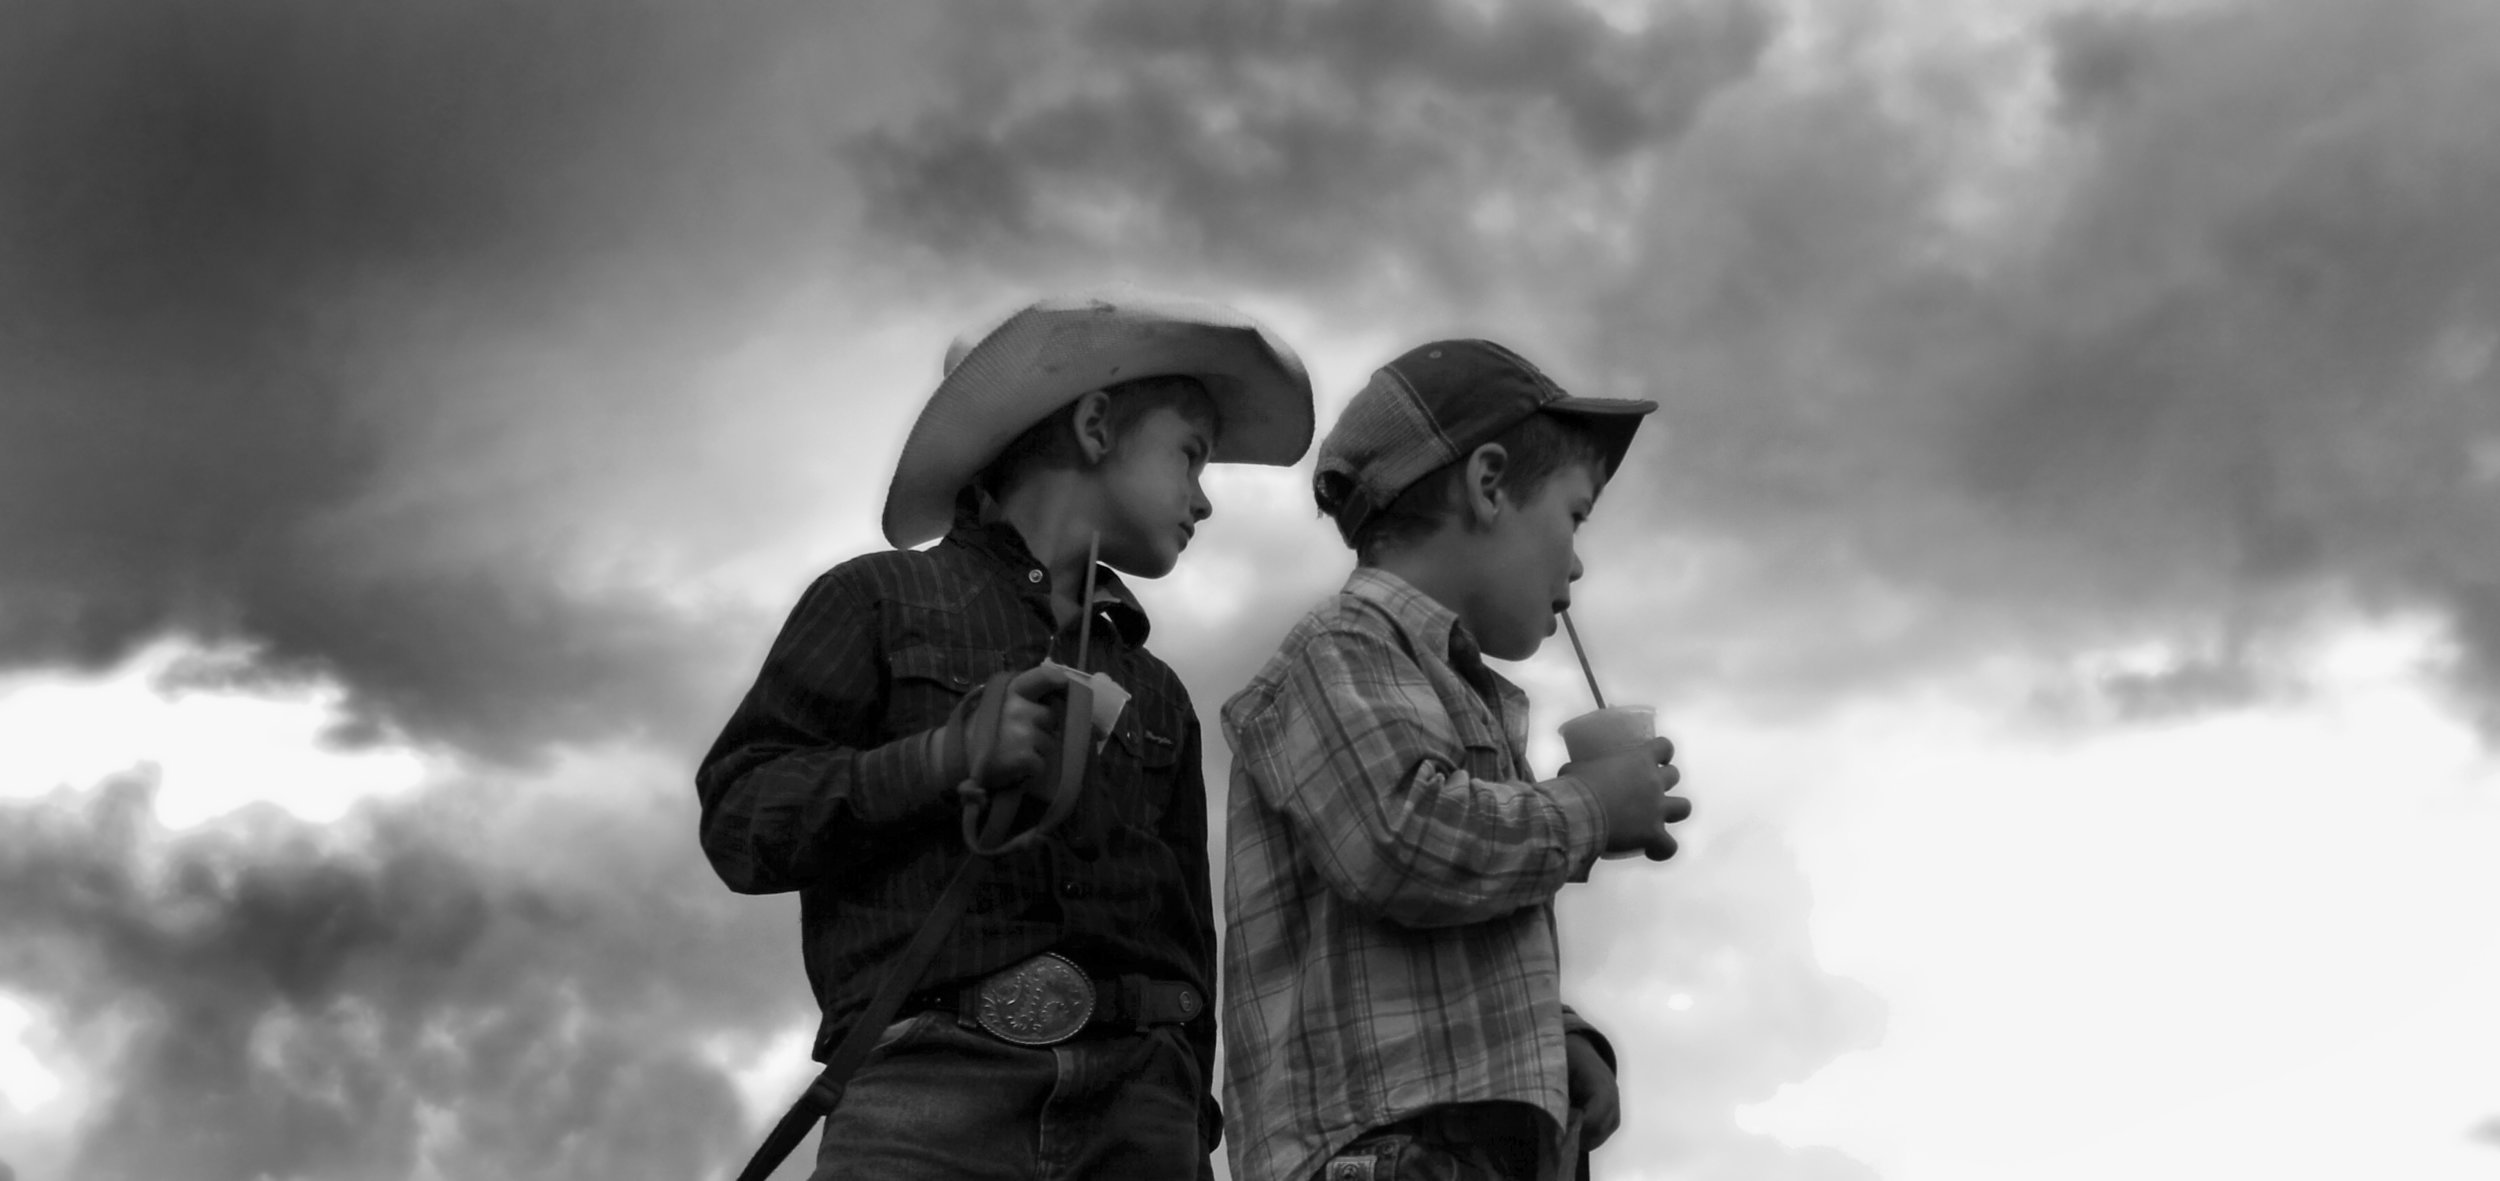 COUNTRY KIDS - Corryong - AUSTRALIA   These country kids, (farmer's sons) photographed at a rodeo in Corryong Victoria, are another breed from city kids. They ride horses, buckjump on young steers, round up sheep, and drink slurpies.